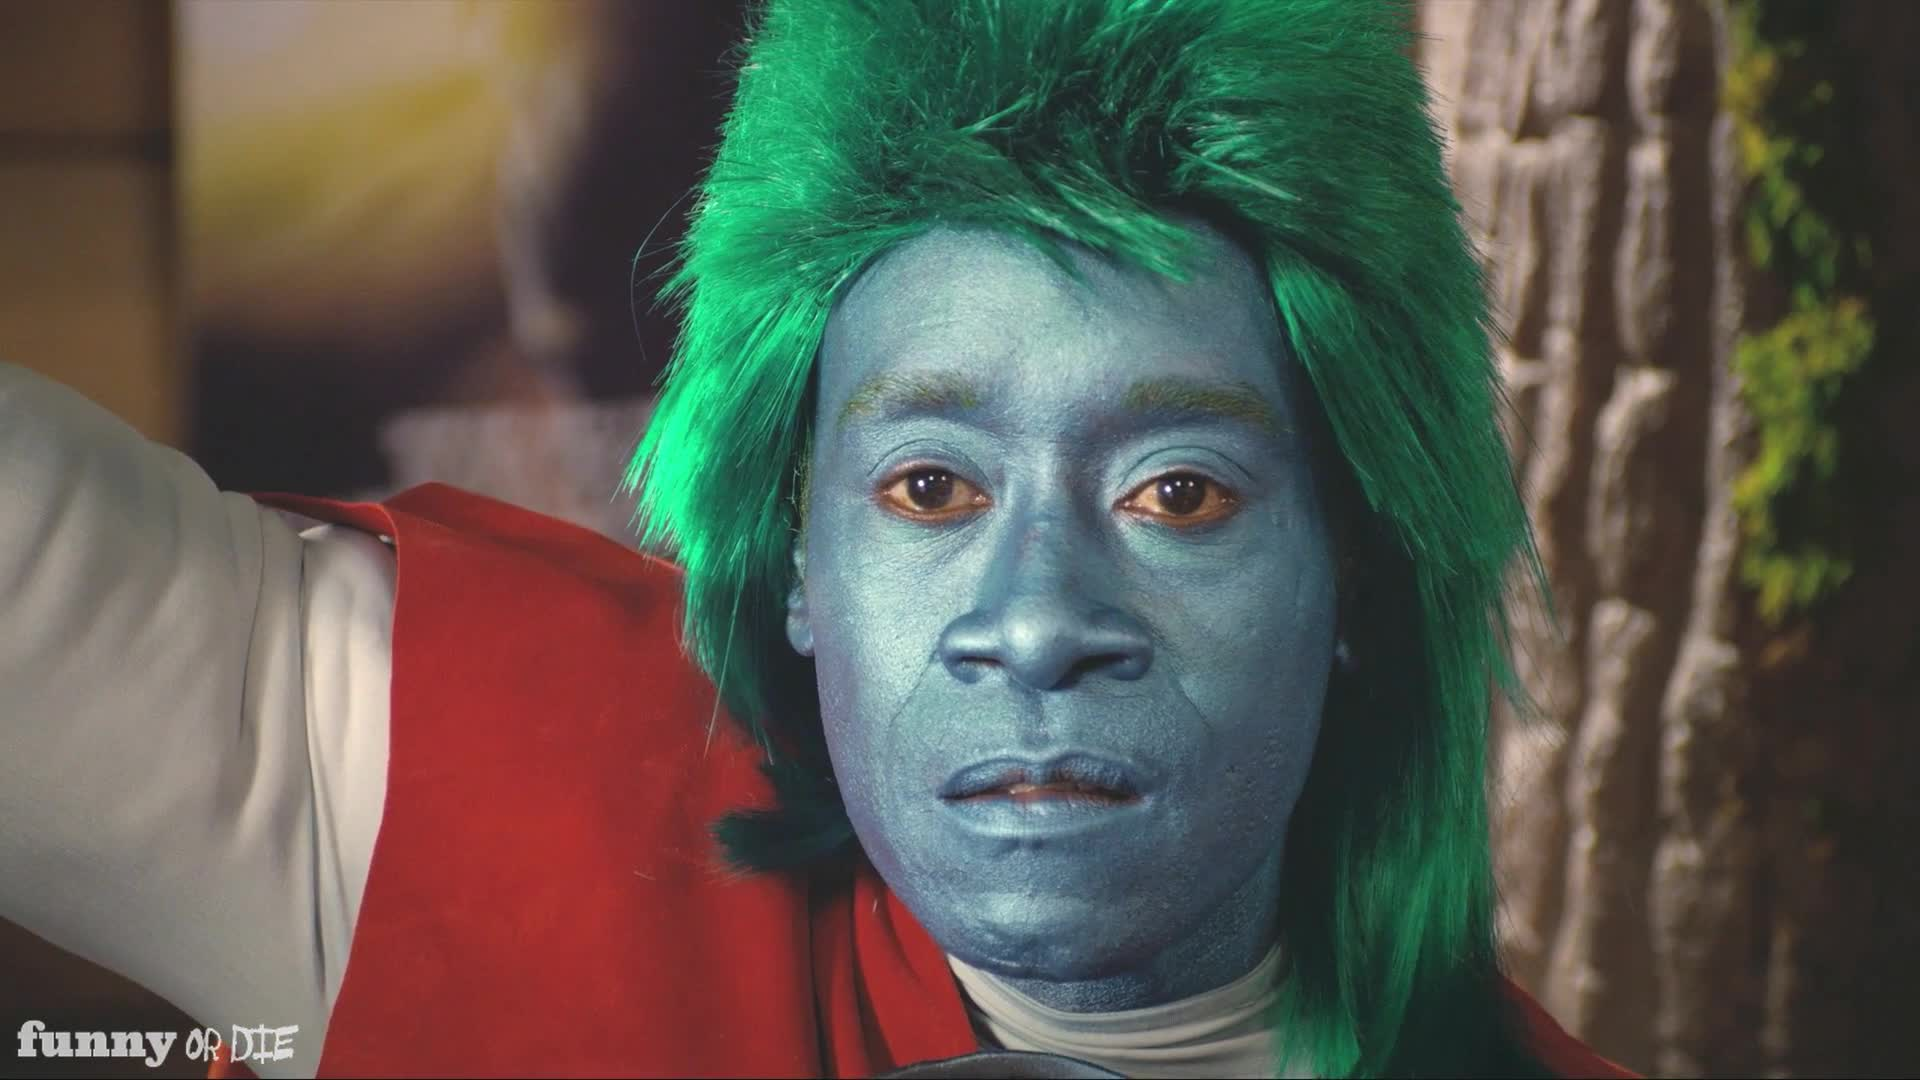 captain planet 2 - funny or die